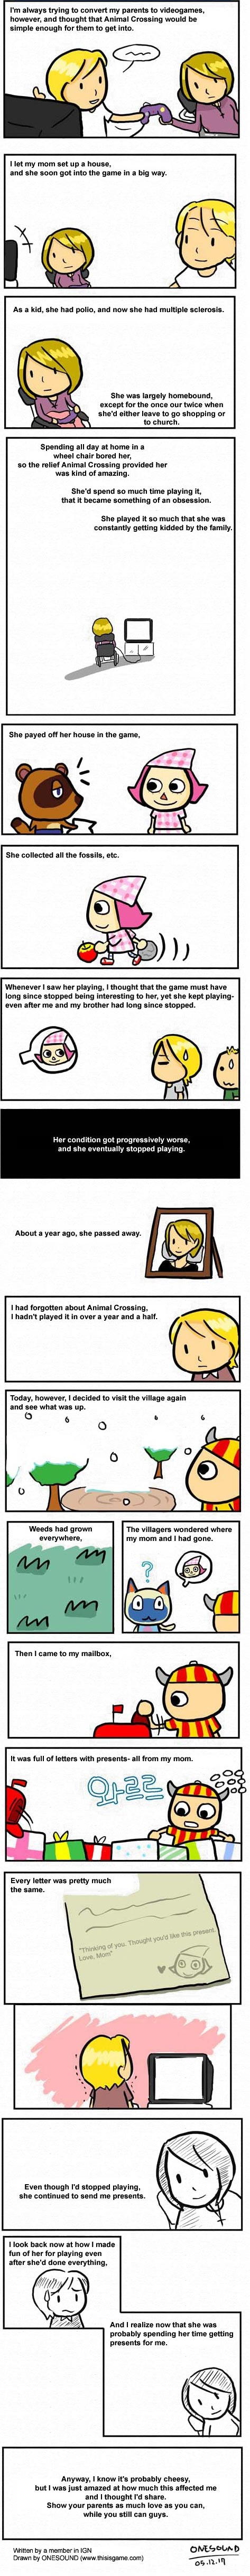 A-tear-jerking-story-about-Animal-Crossing2